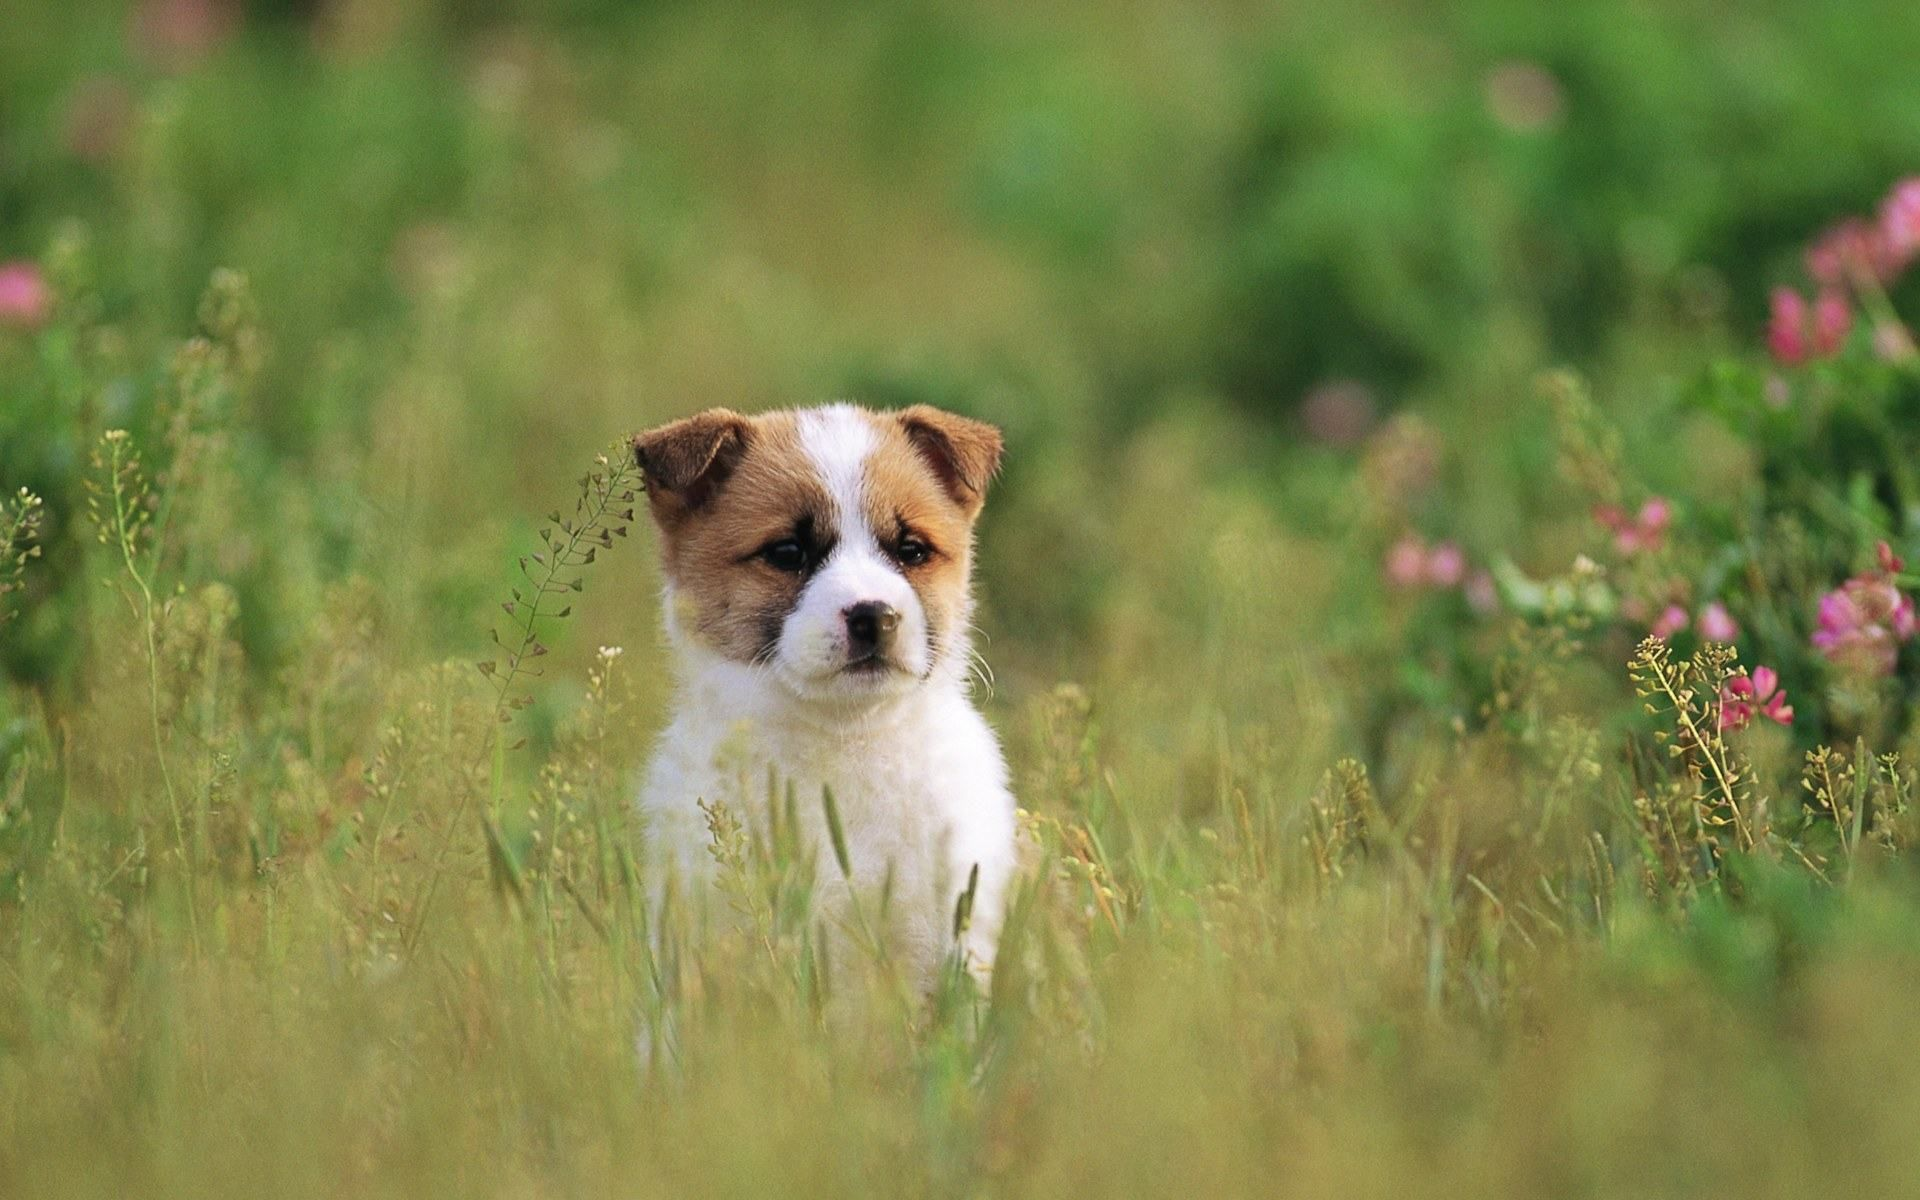 Cute Dogs And Puppies Wallpapers Wallpaper Cave Cute Dogs And Puppies Pretty Dogs Cute Dog Wallpaper